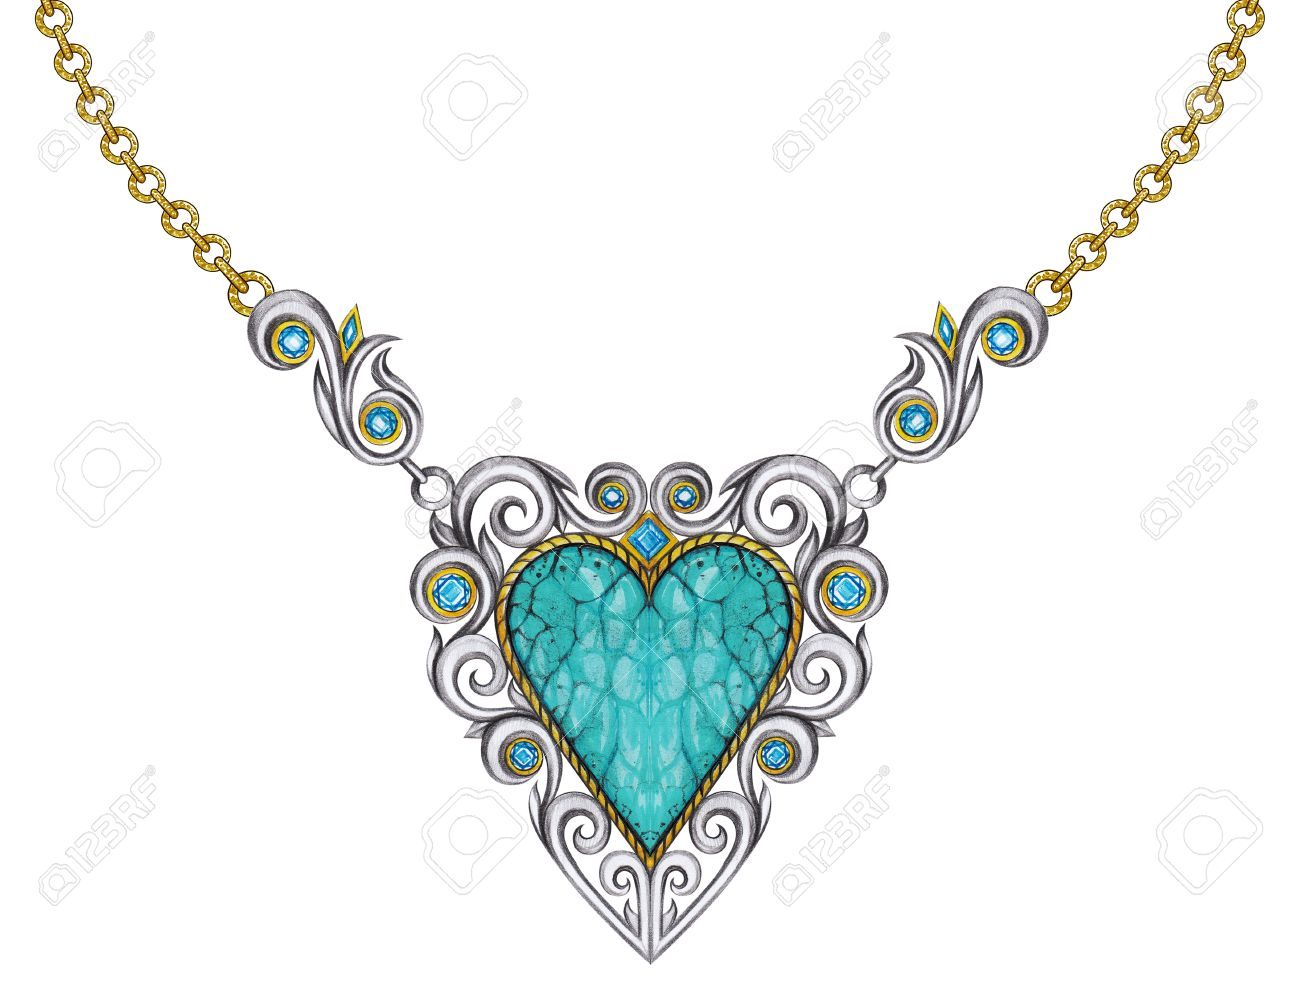 Jewelry design vintage art mix heart necklace hand pencil drawing and painting on paper